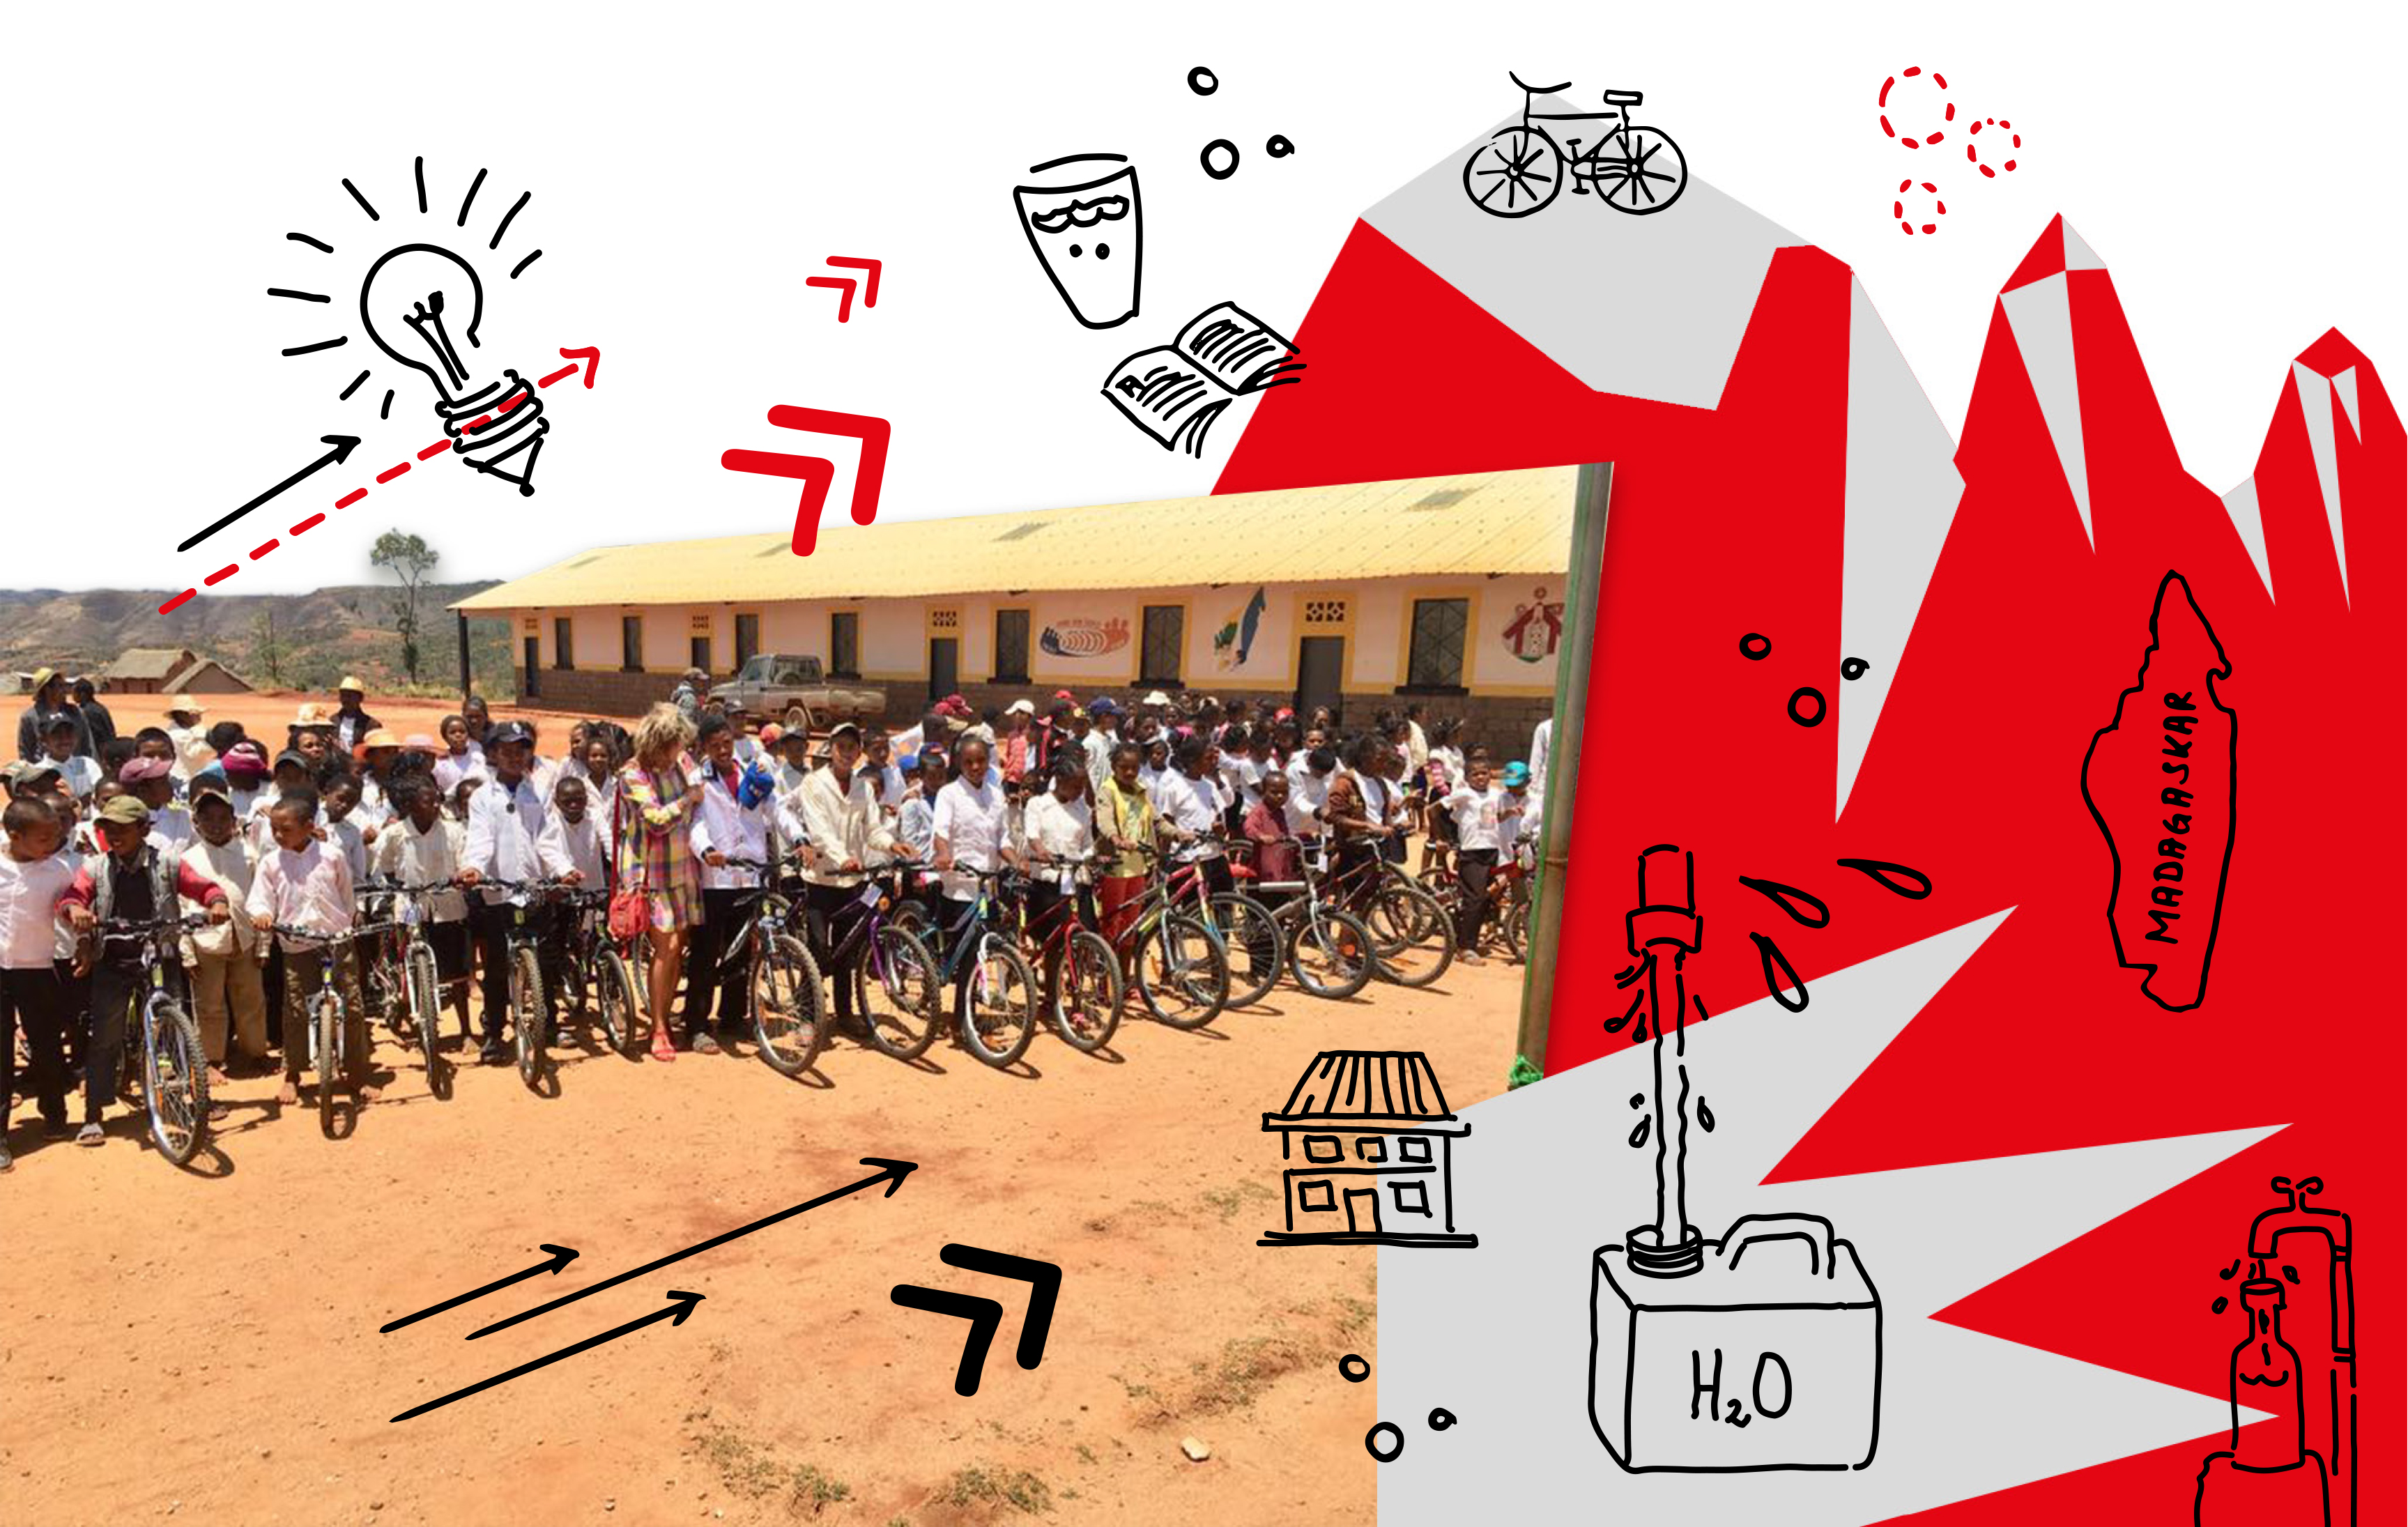 For these children in Madagascar, having a bicycle makes it easier to go to school